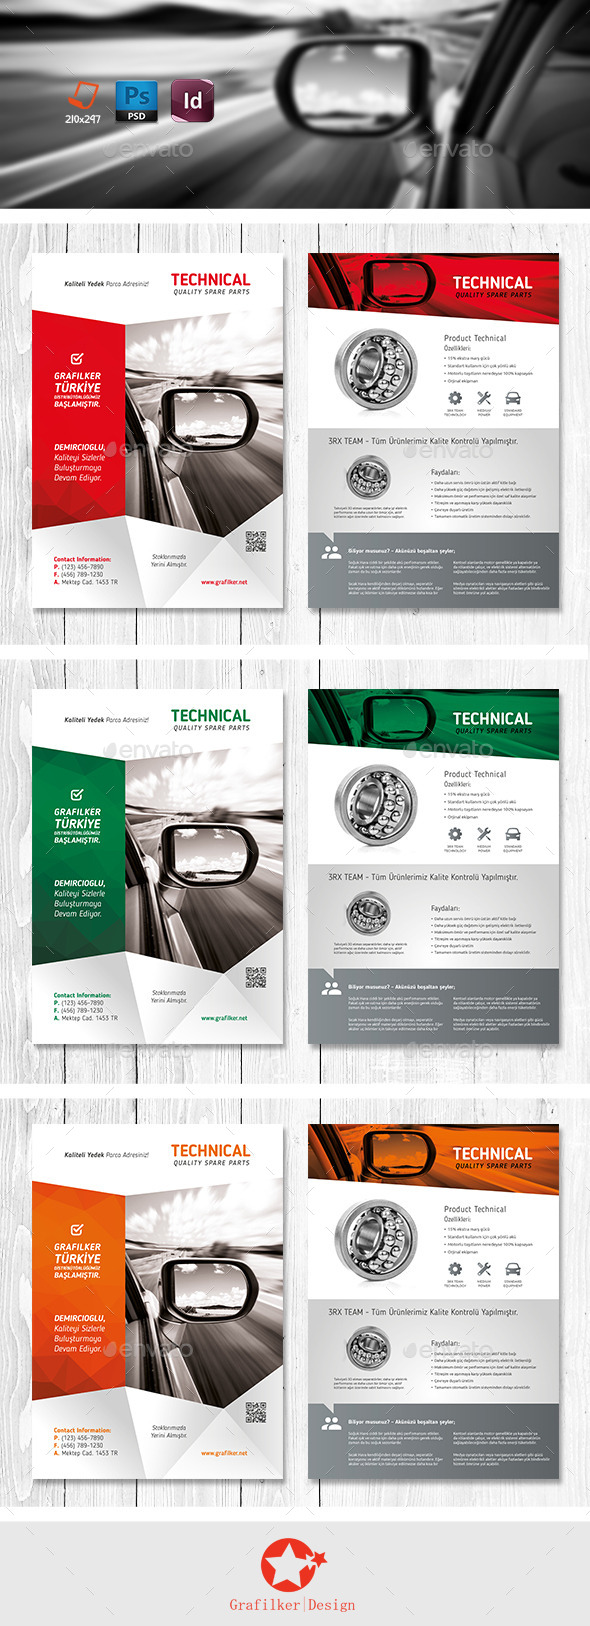 GraphicRiver Technical Data Product Flyer Templates 11220281